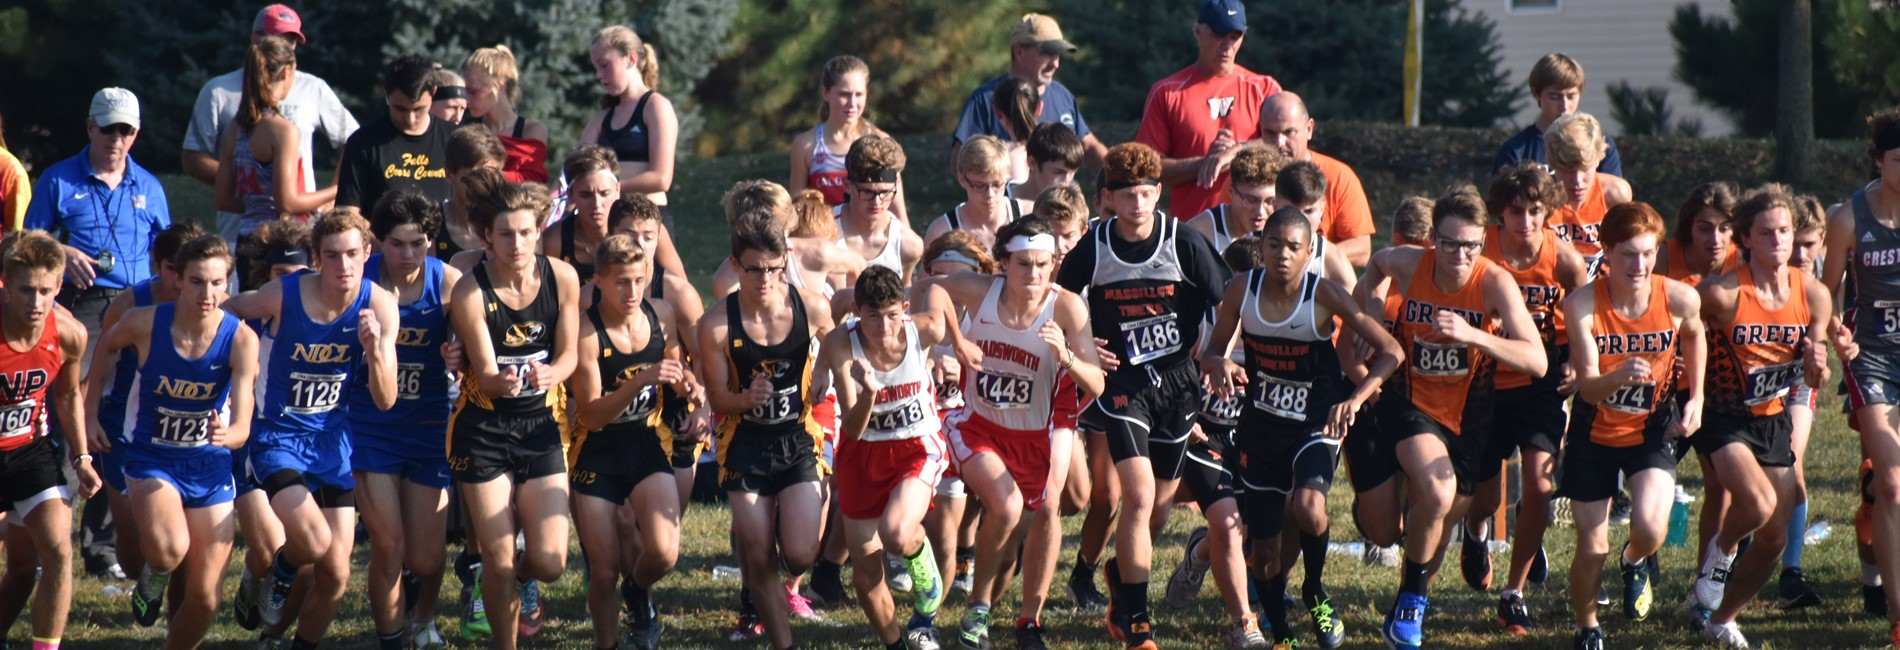 WHS Boys Cross Country